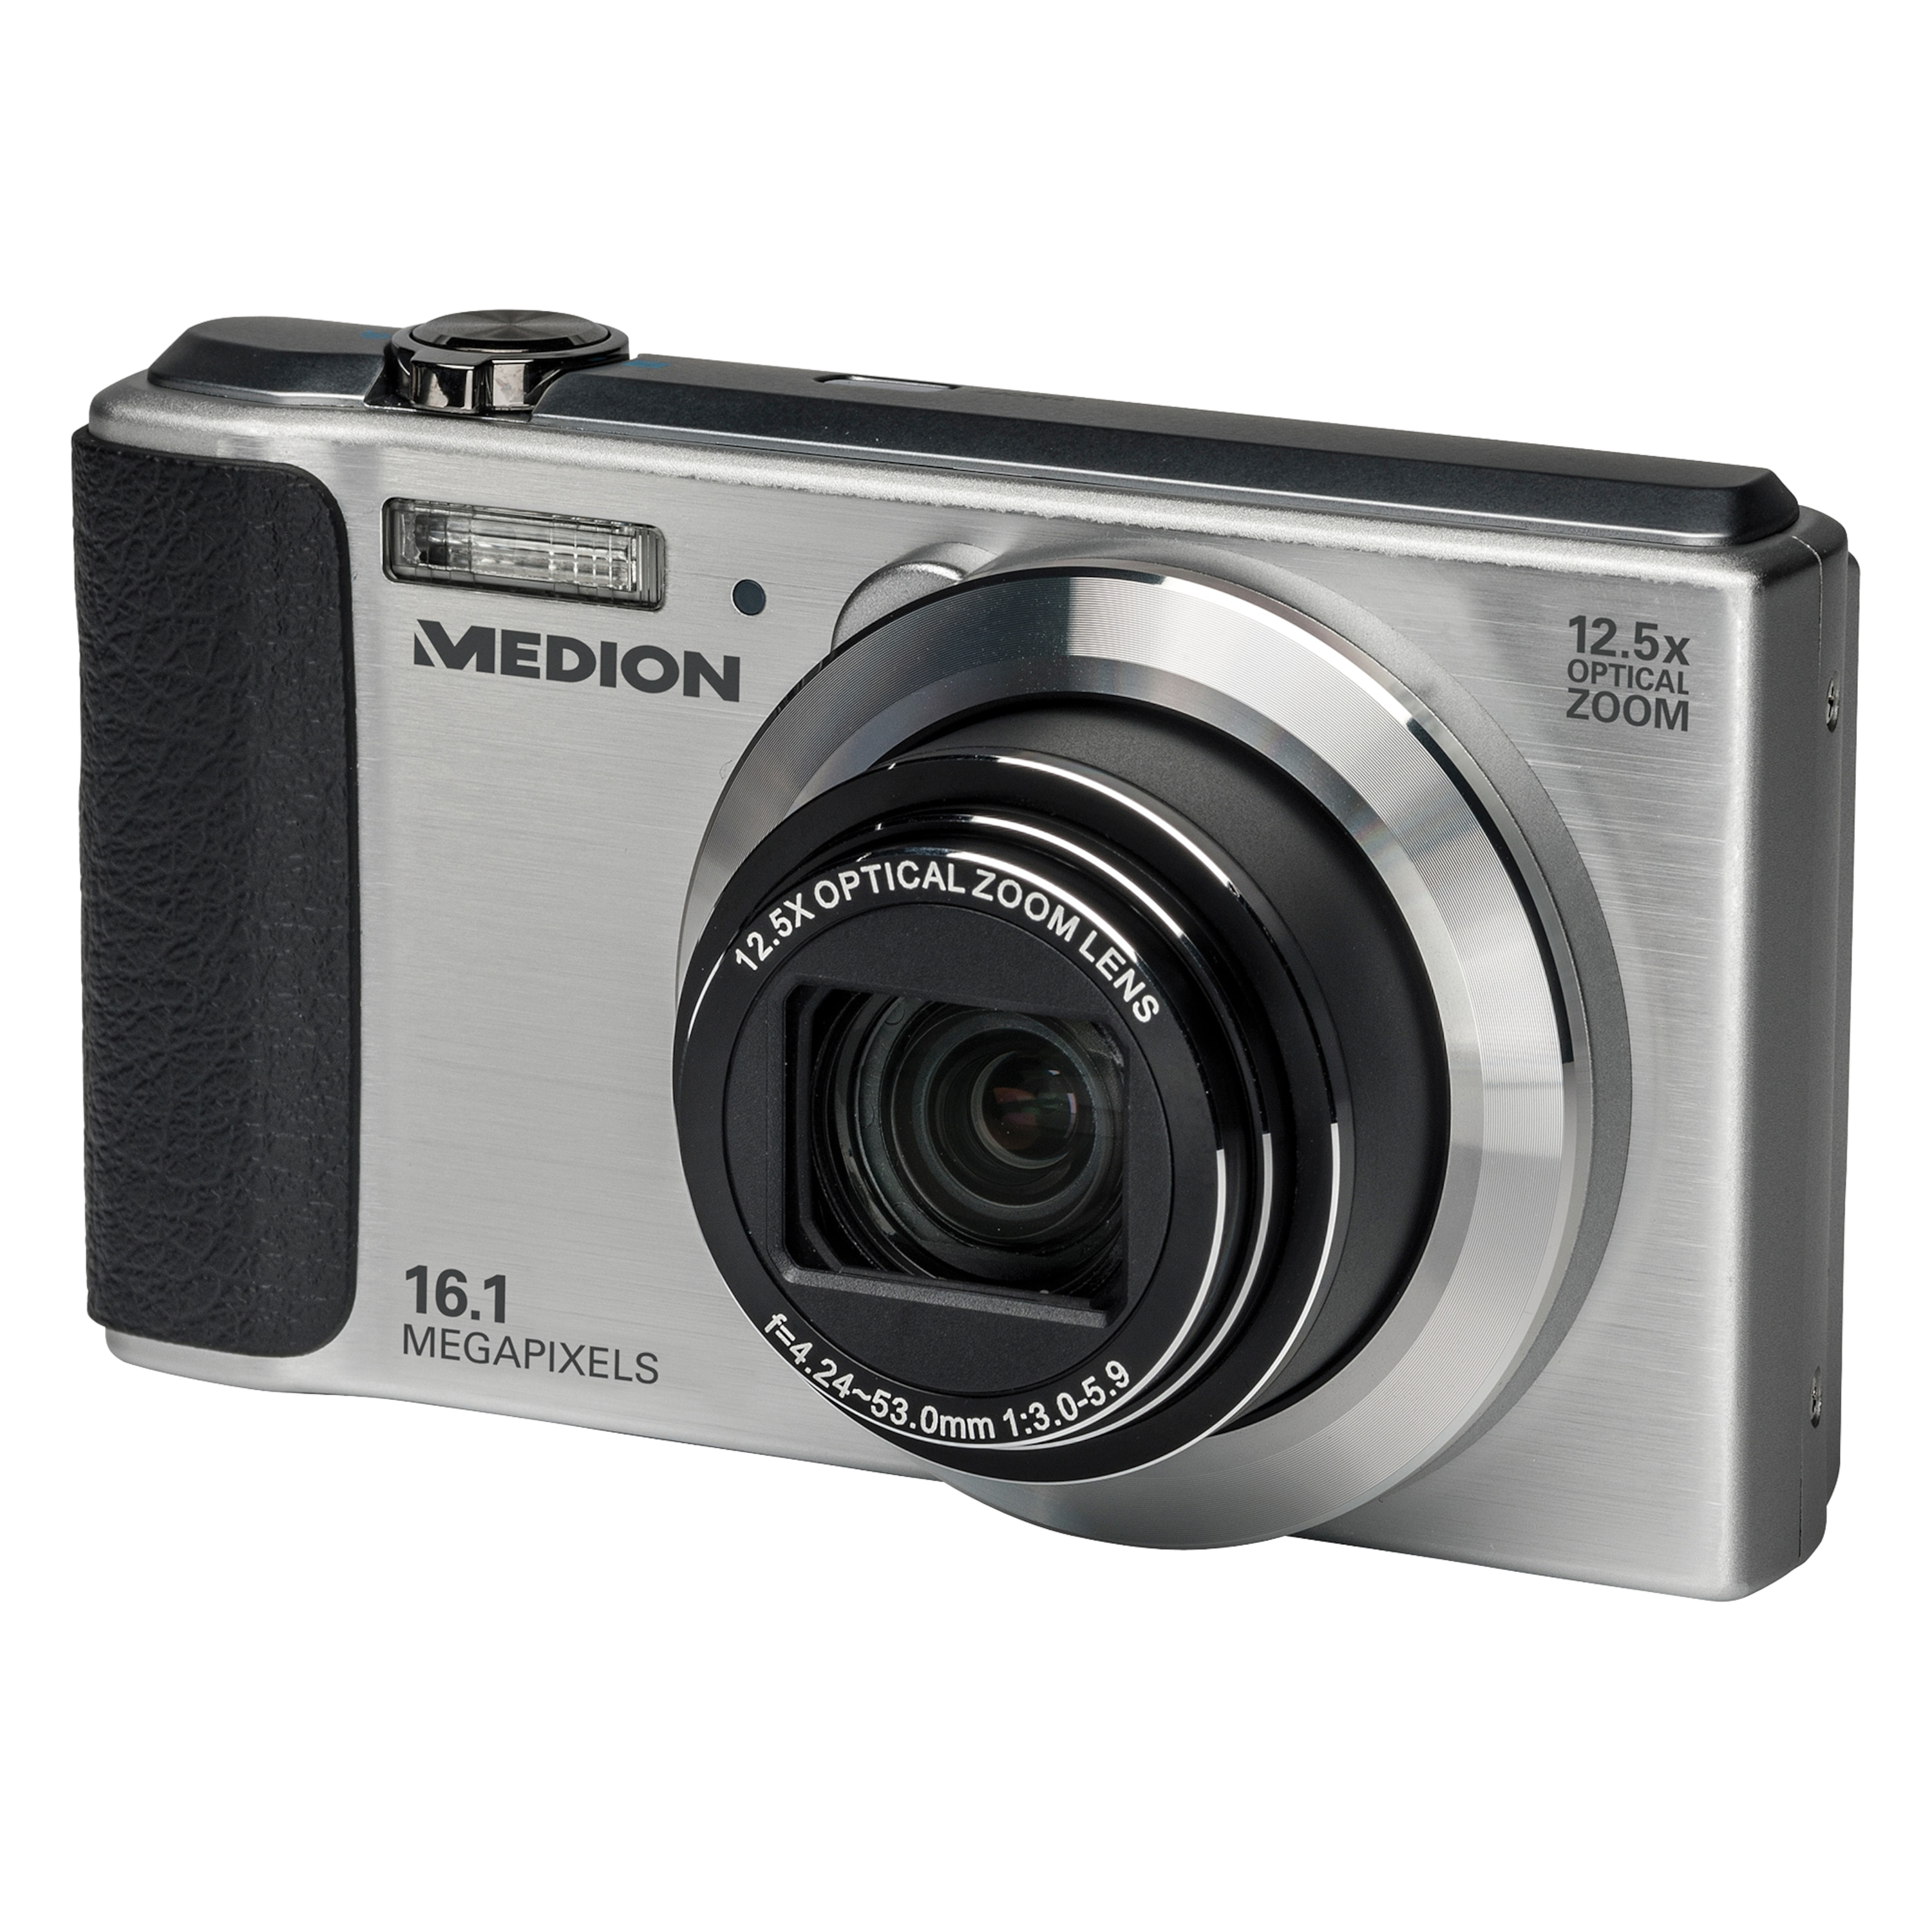 "MEDION® LIFE® P44012 Digitalkamera, 16MP, 86 cm (2,7"") LC-Display, 12,5-fach optischer Zoom, Mechanischer Bildstabilisator, HD Videoauflösung 720p"